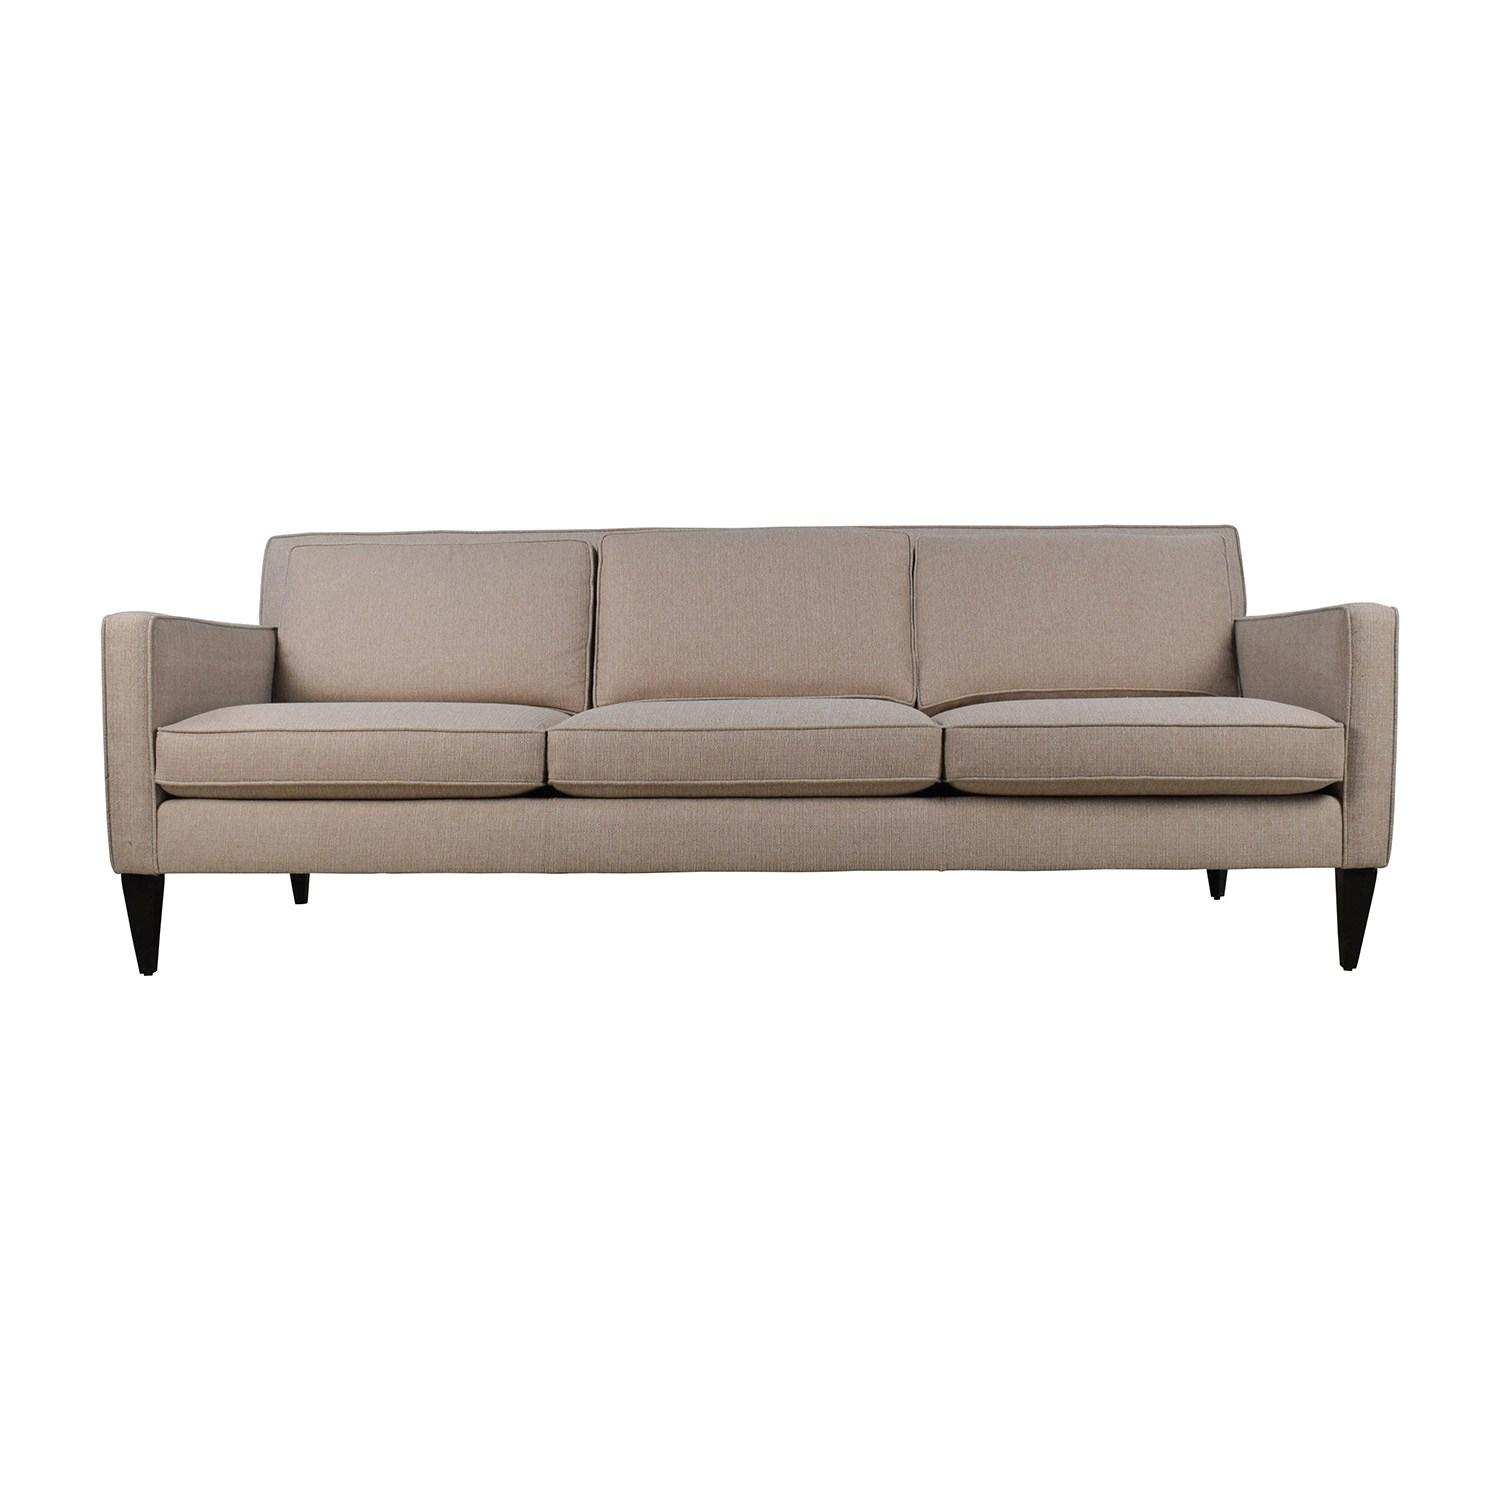 crate and barrel sofa sleeper review grey leather power reclining 20 collection of sofas ideas